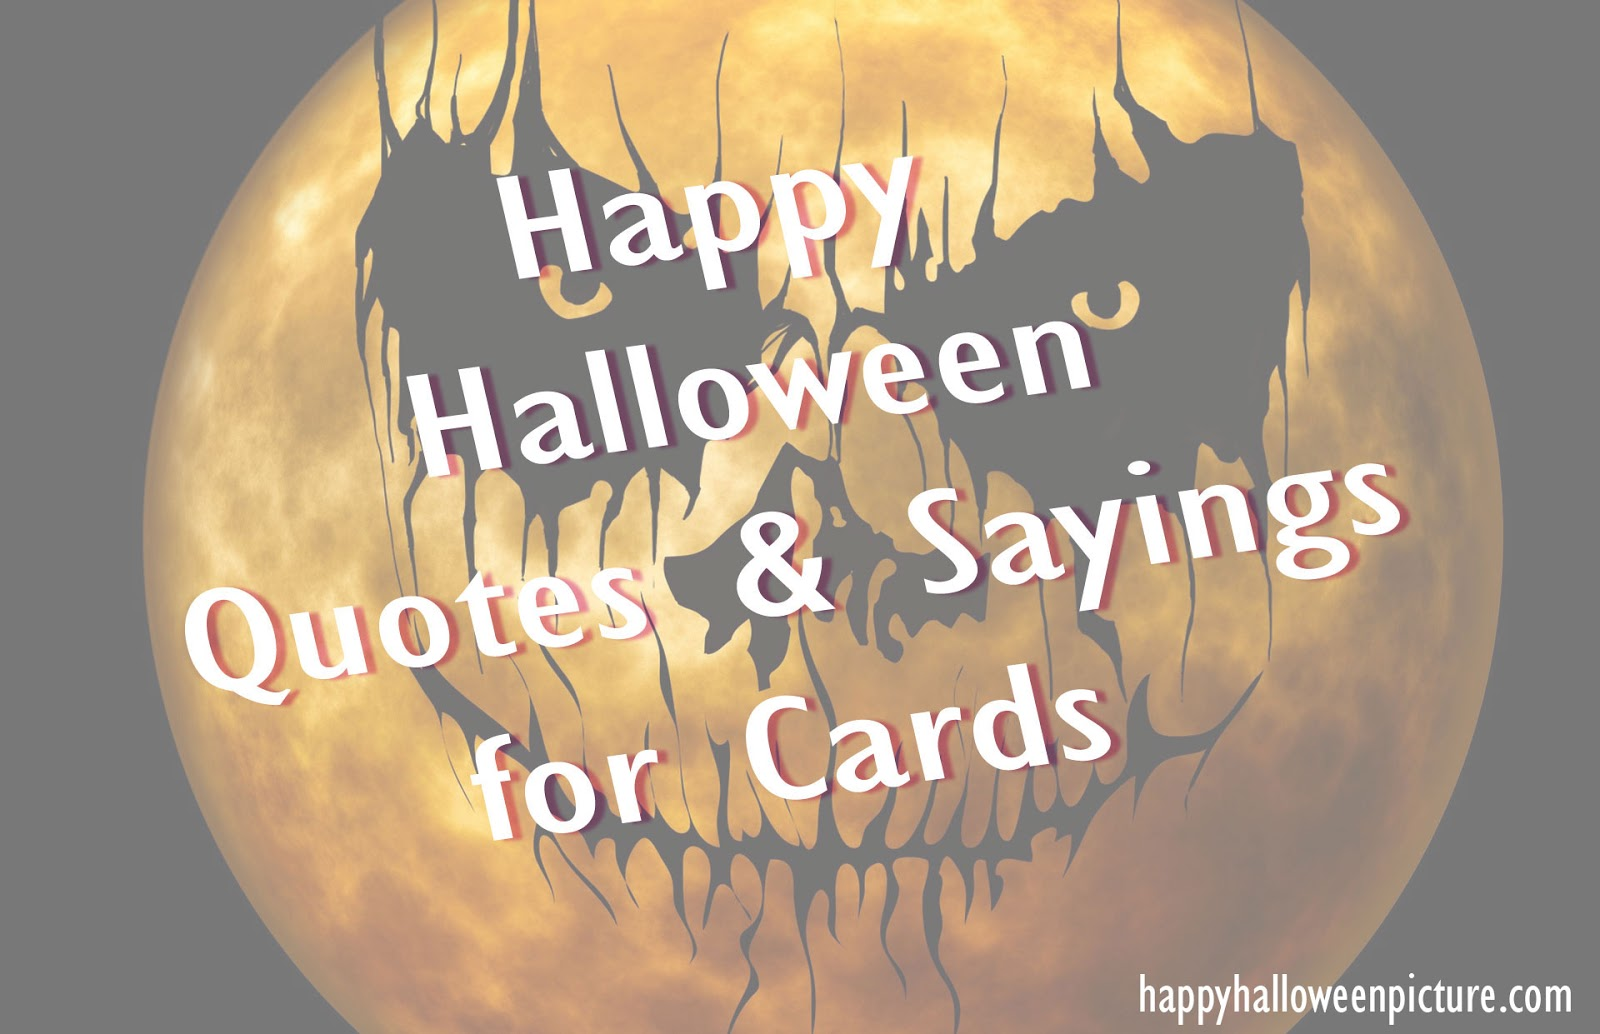 2016 famous halloween quotes - What To Say In A Halloween Card